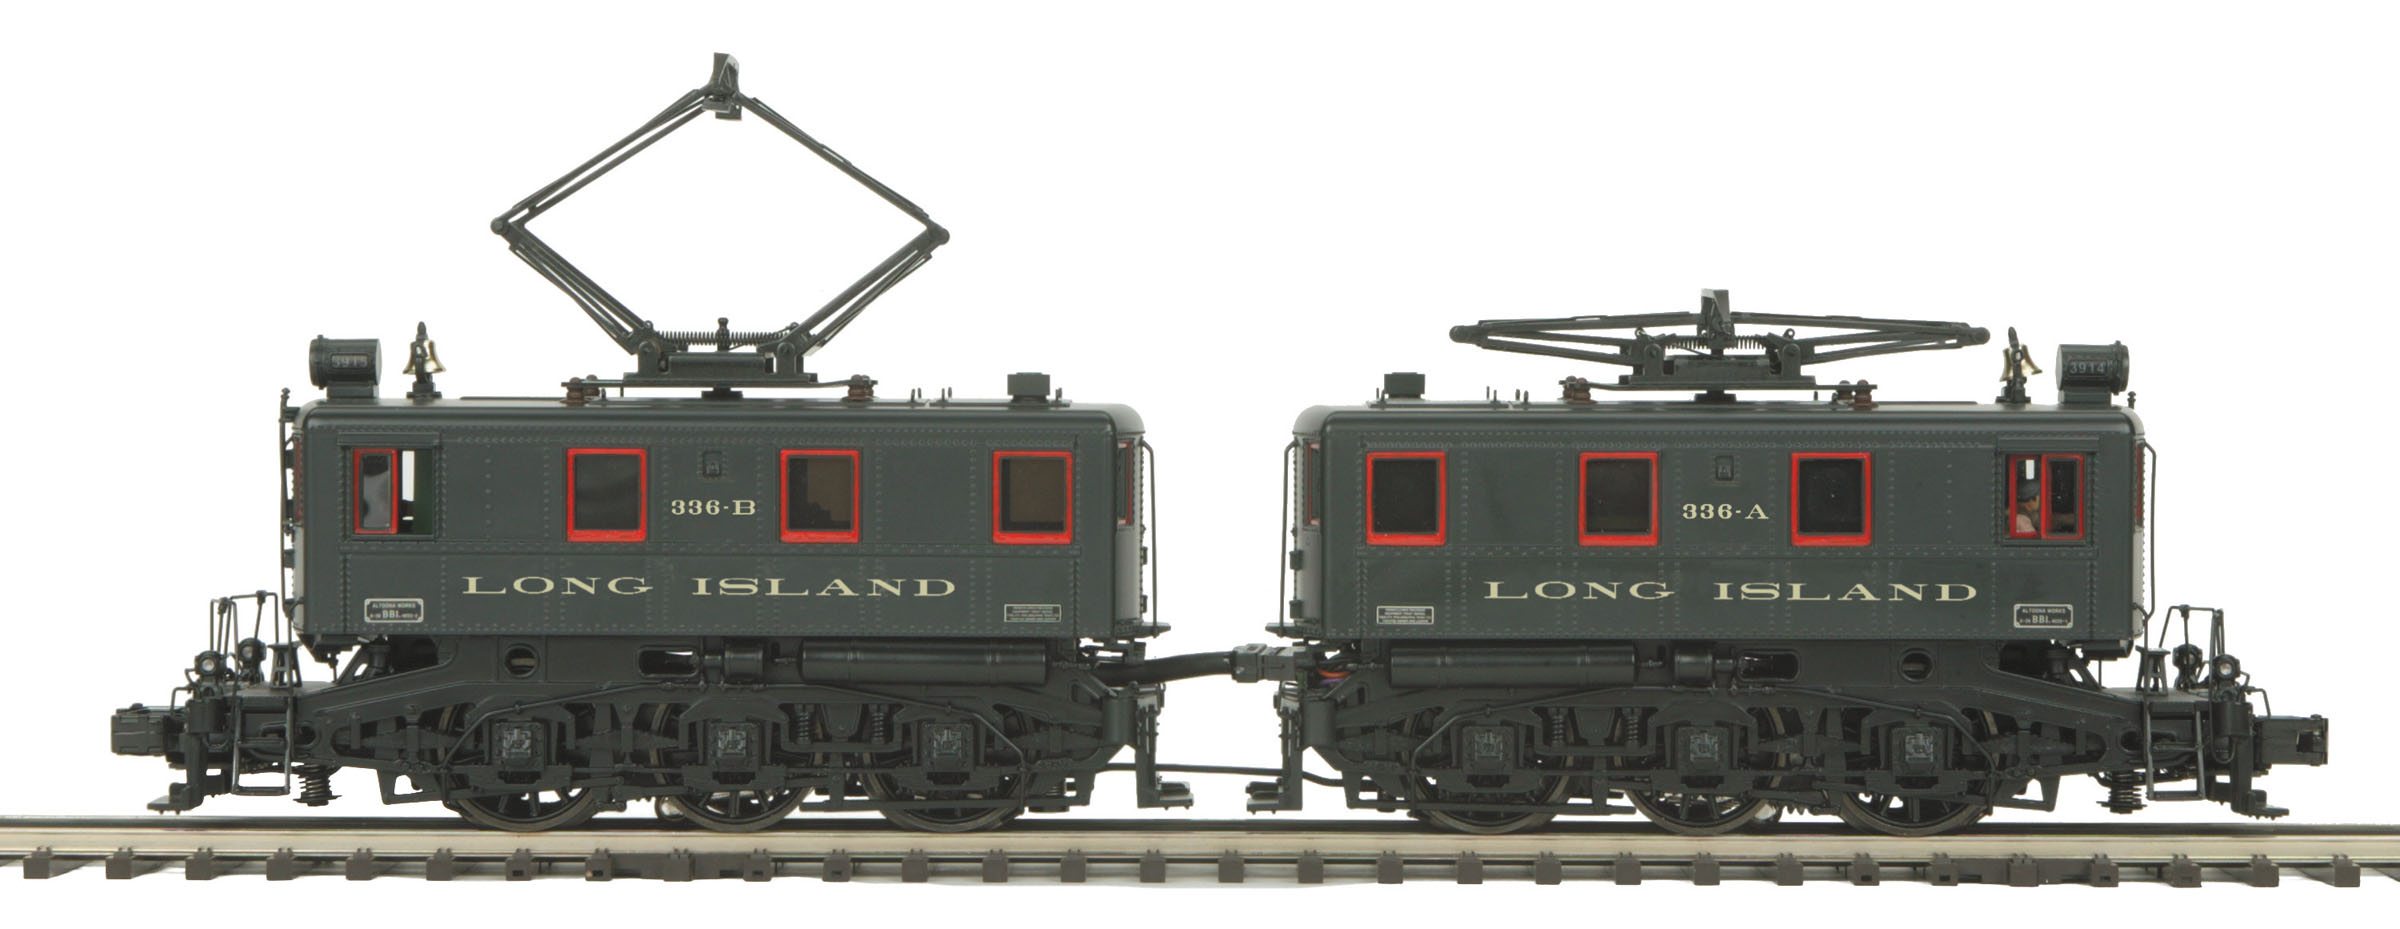 20-5562-1   MTH ELECTRIC TRAINS